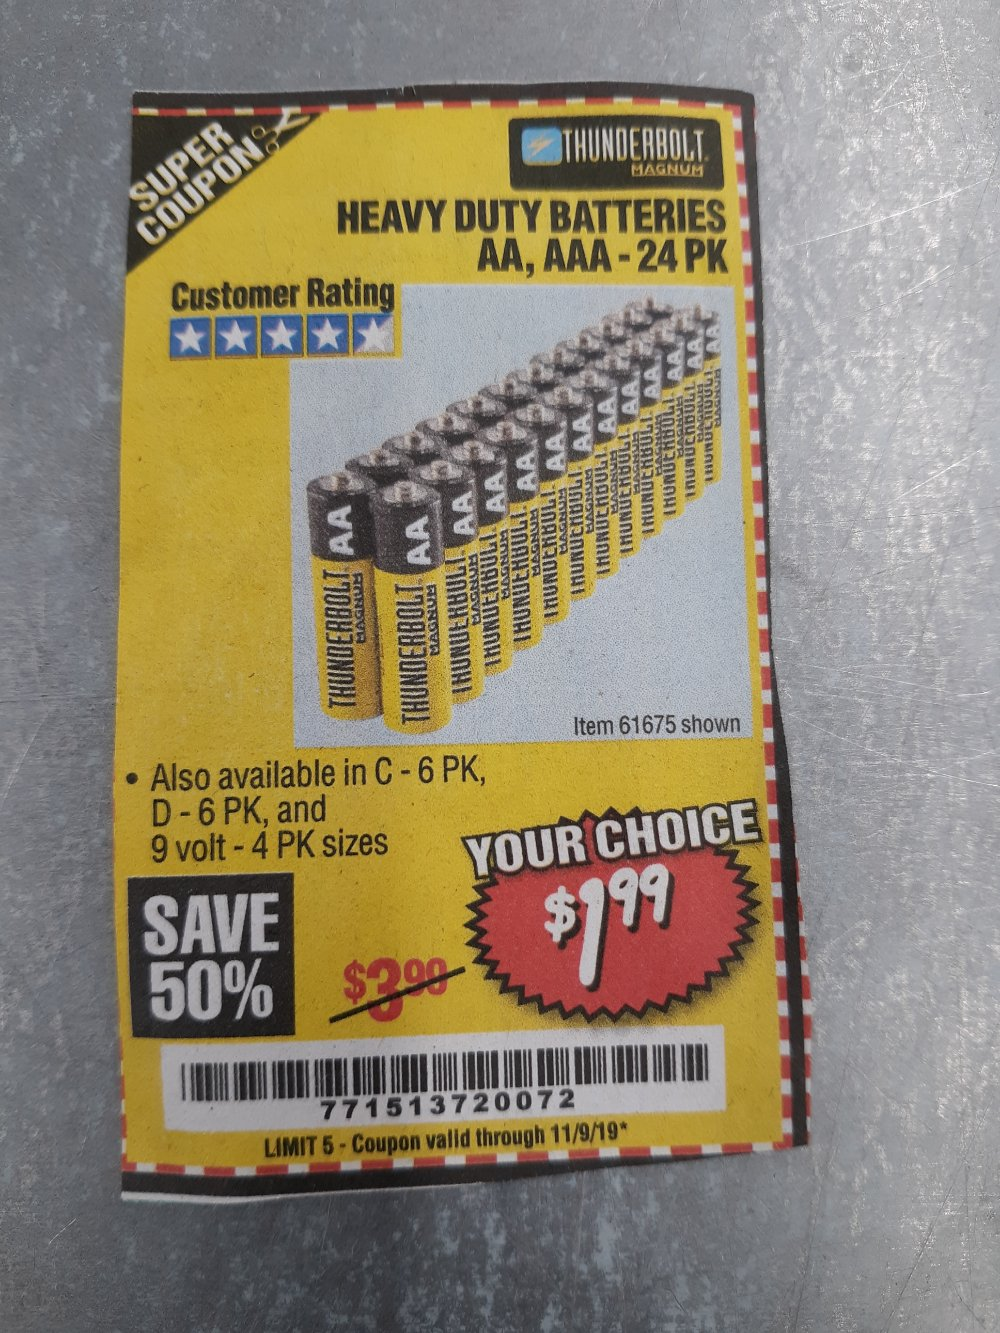 Harbor Freight Coupon, HF Coupons - C D 9v Heavy Duty Batteries